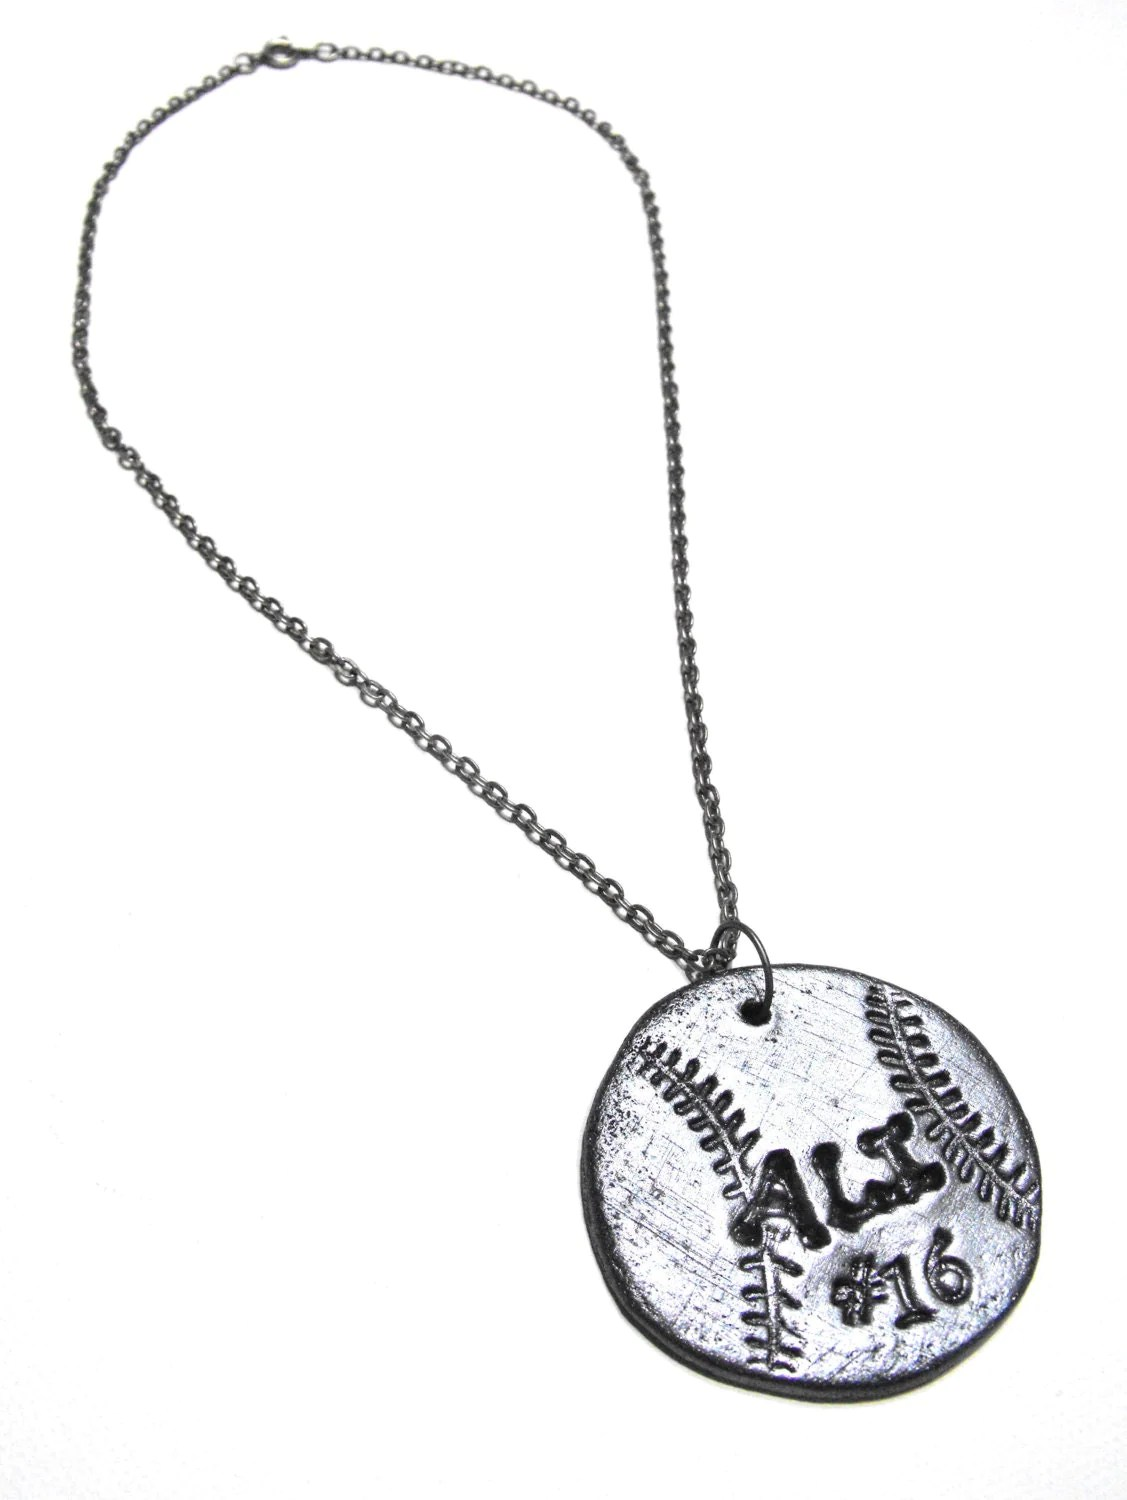 Softball Necklace Personalized with Player's Name